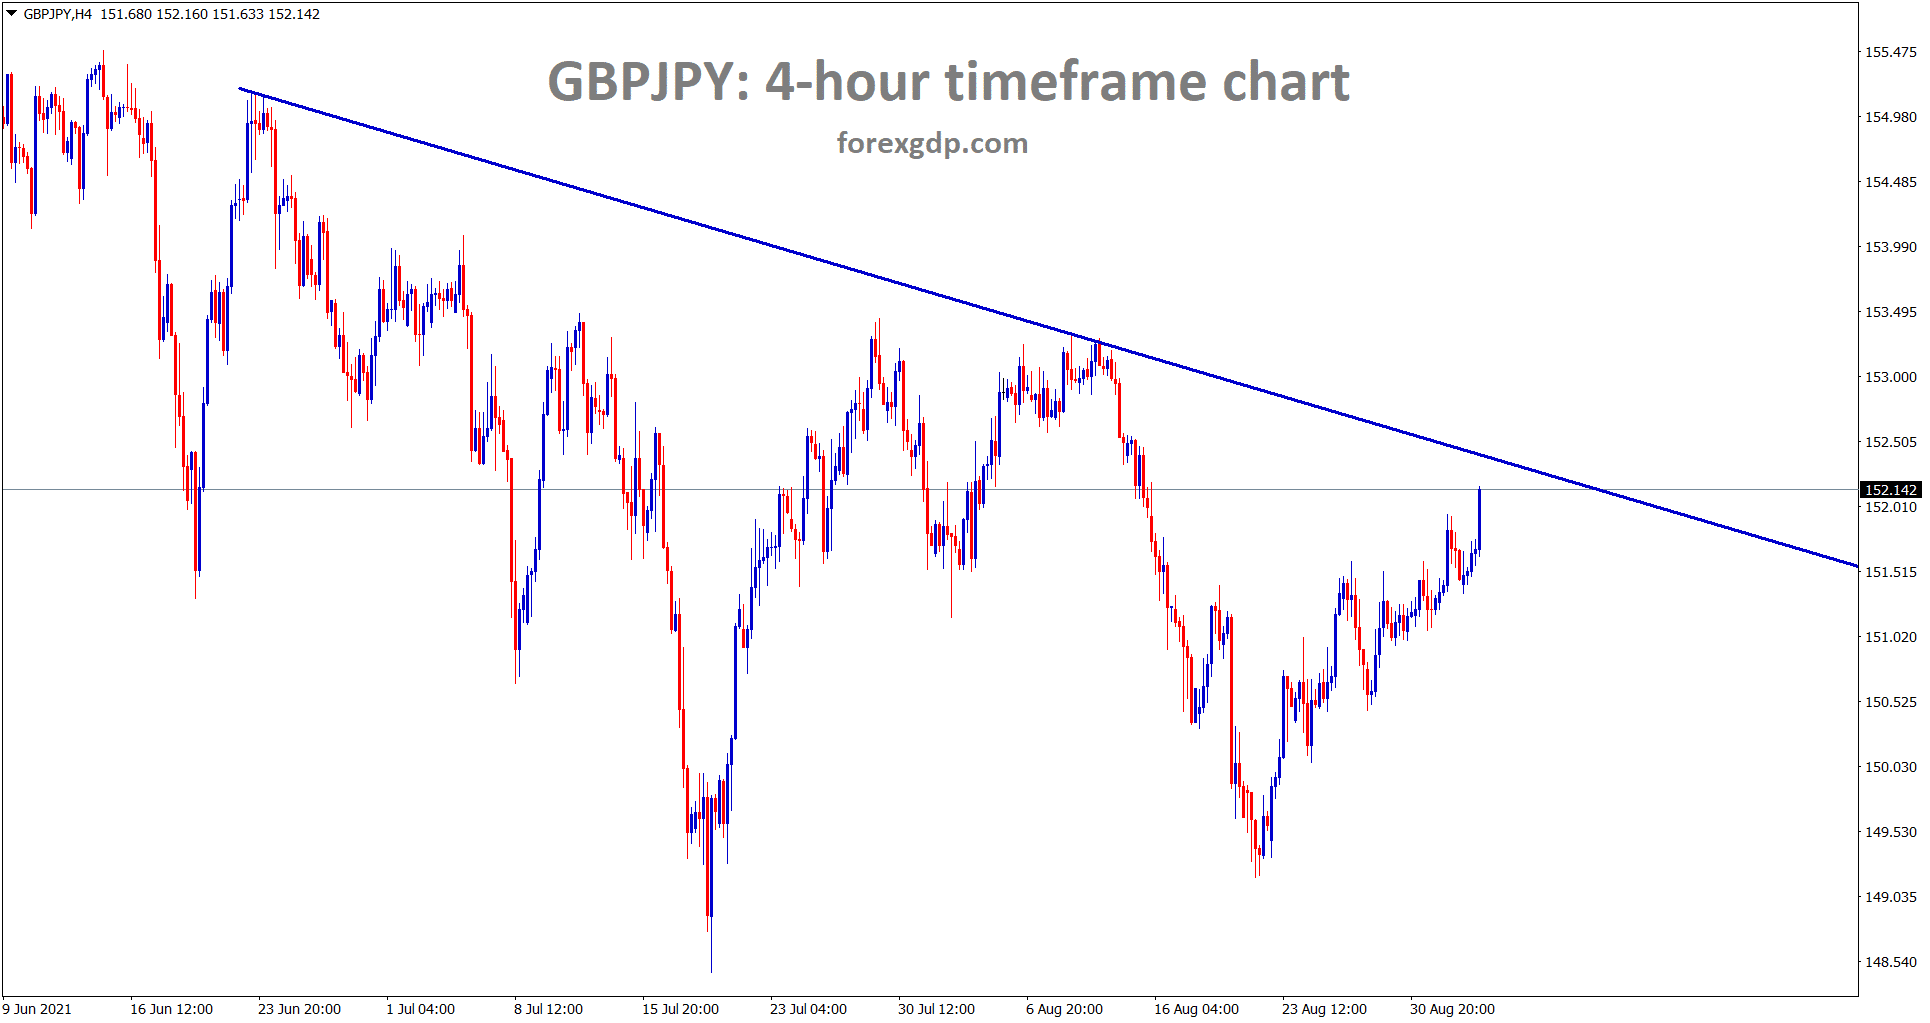 GBPJPY is going to reach the lower high area of the downtrend line